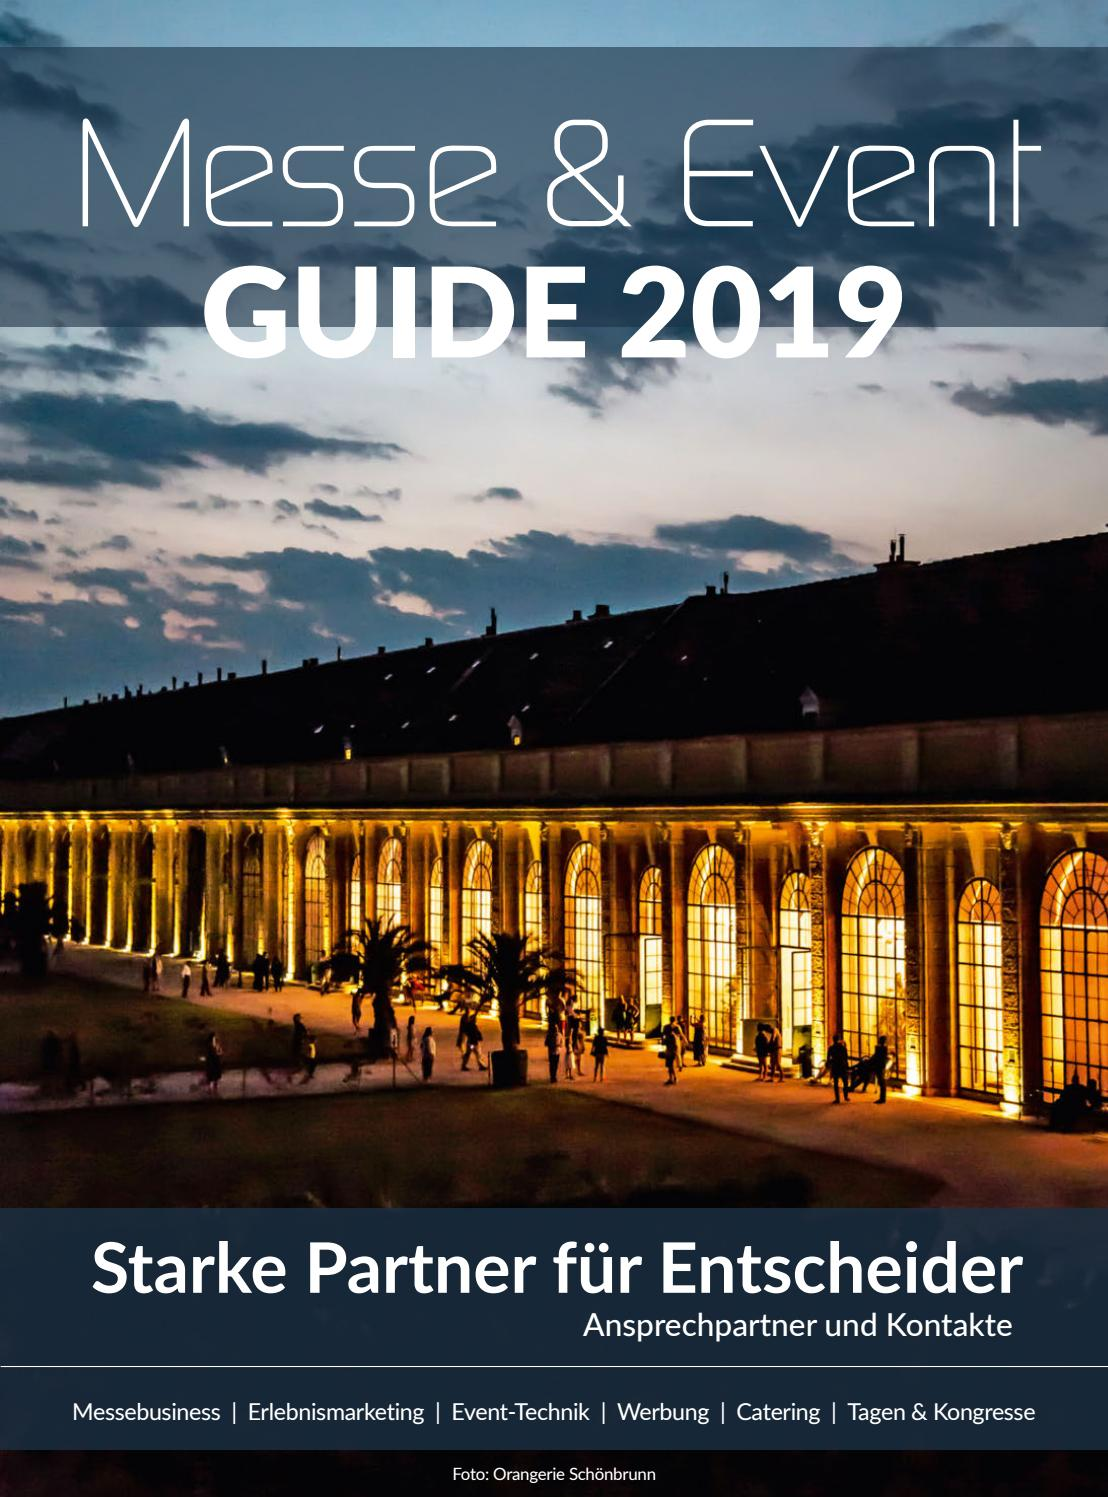 Barbara's Küche Wien Messe Event Guide 2019 By Messe Event Magazin Issuu